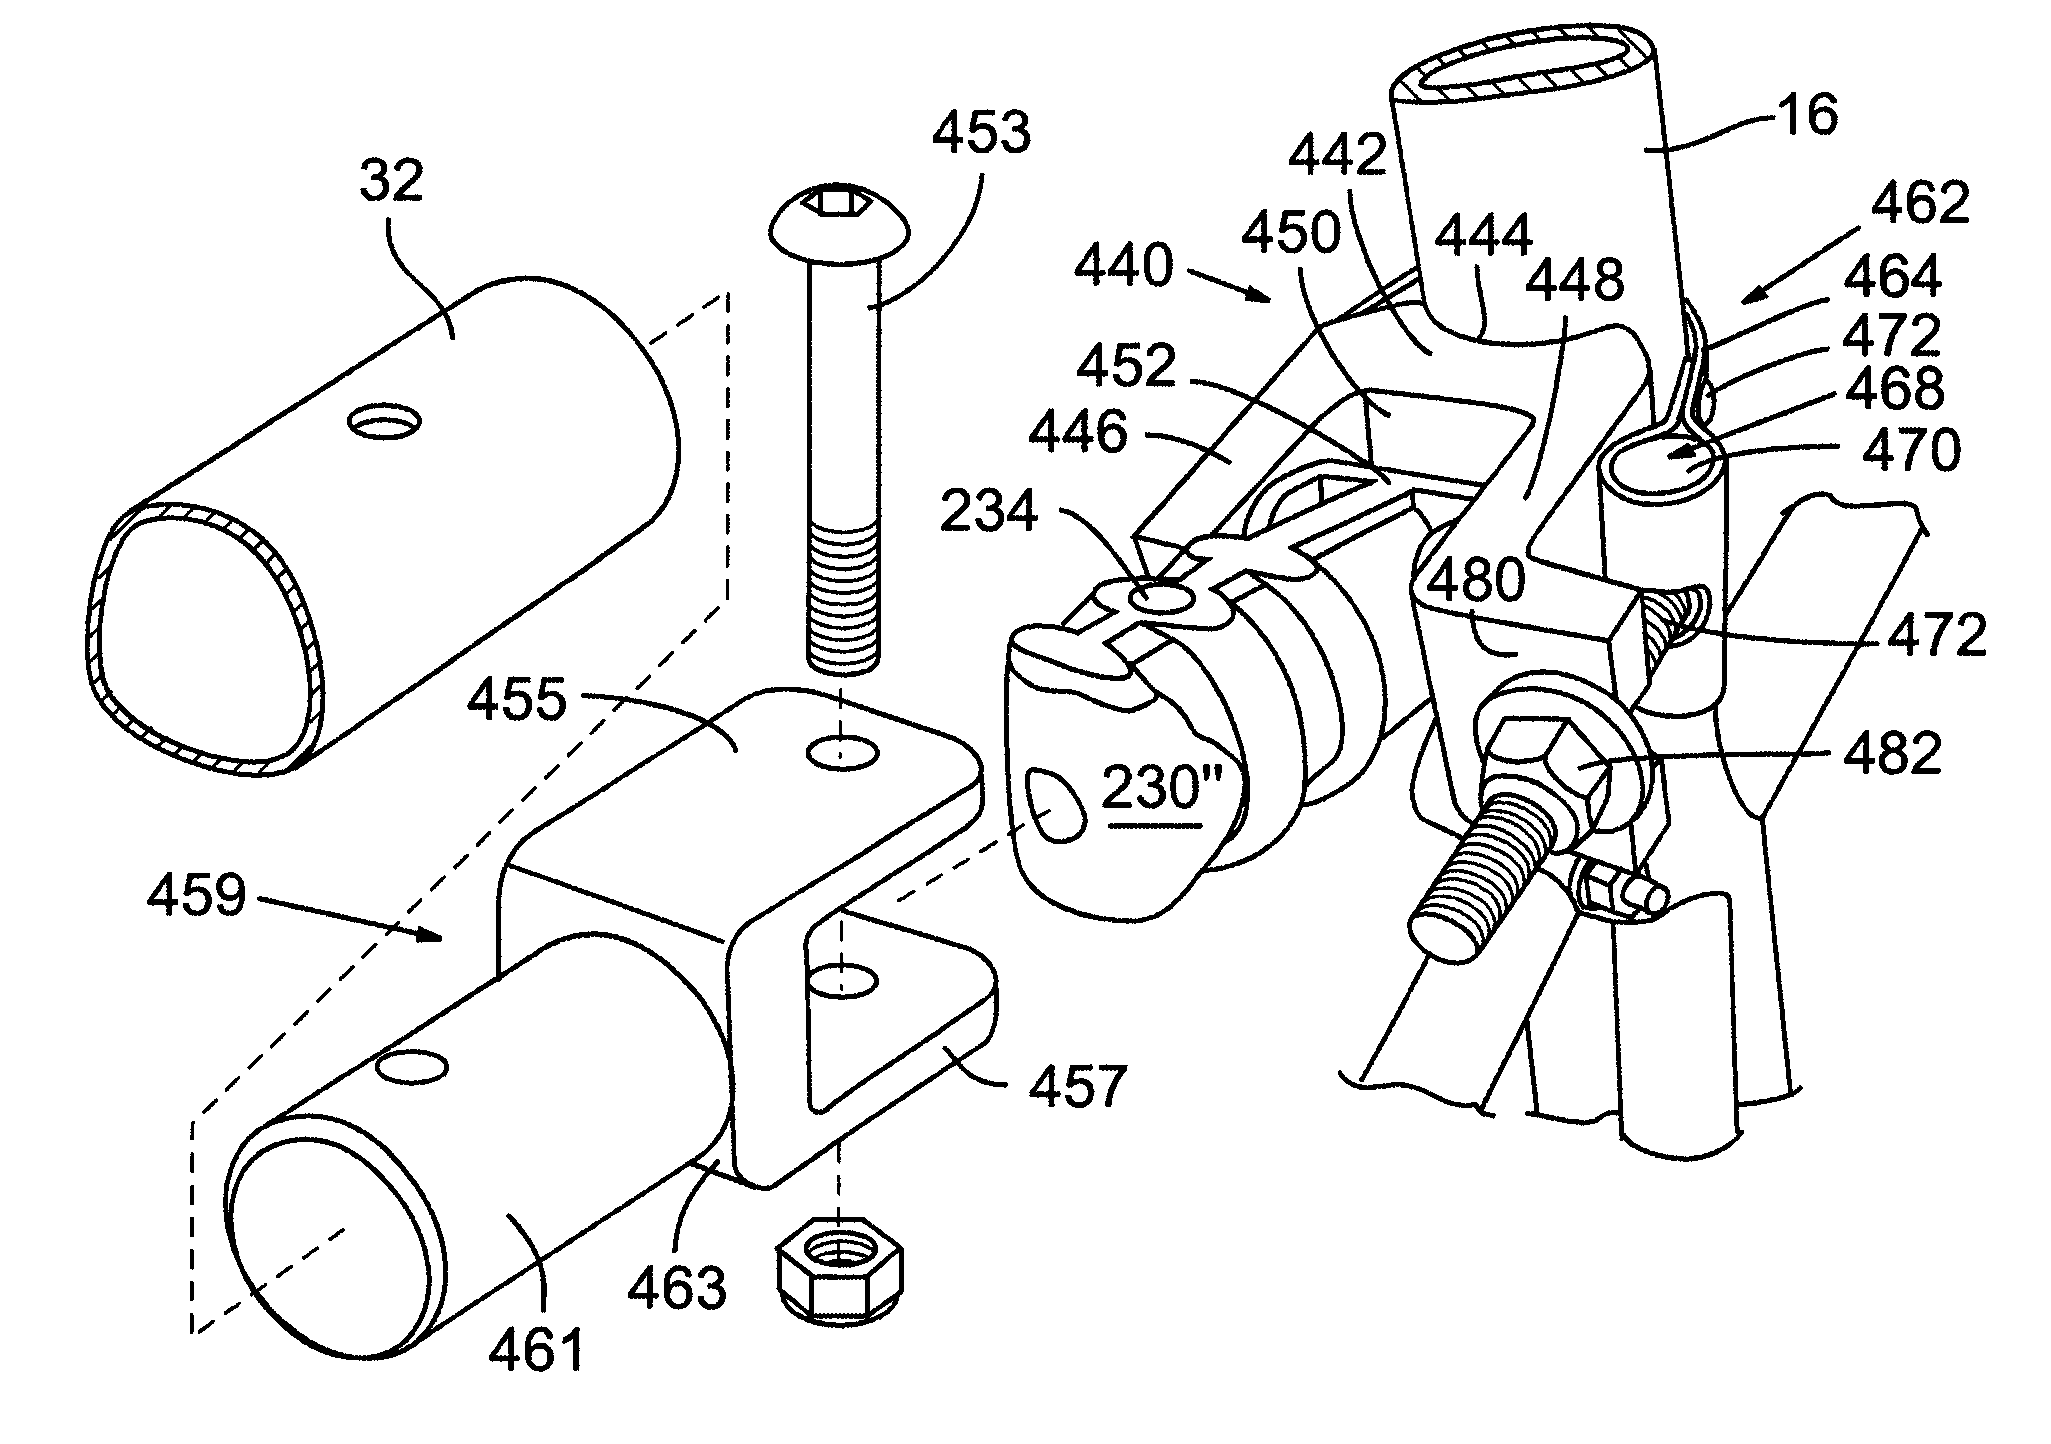 Patent Us8091908 Bicycle Trailer Hitch Google Patents Ccc Wiring Diagram Drawing